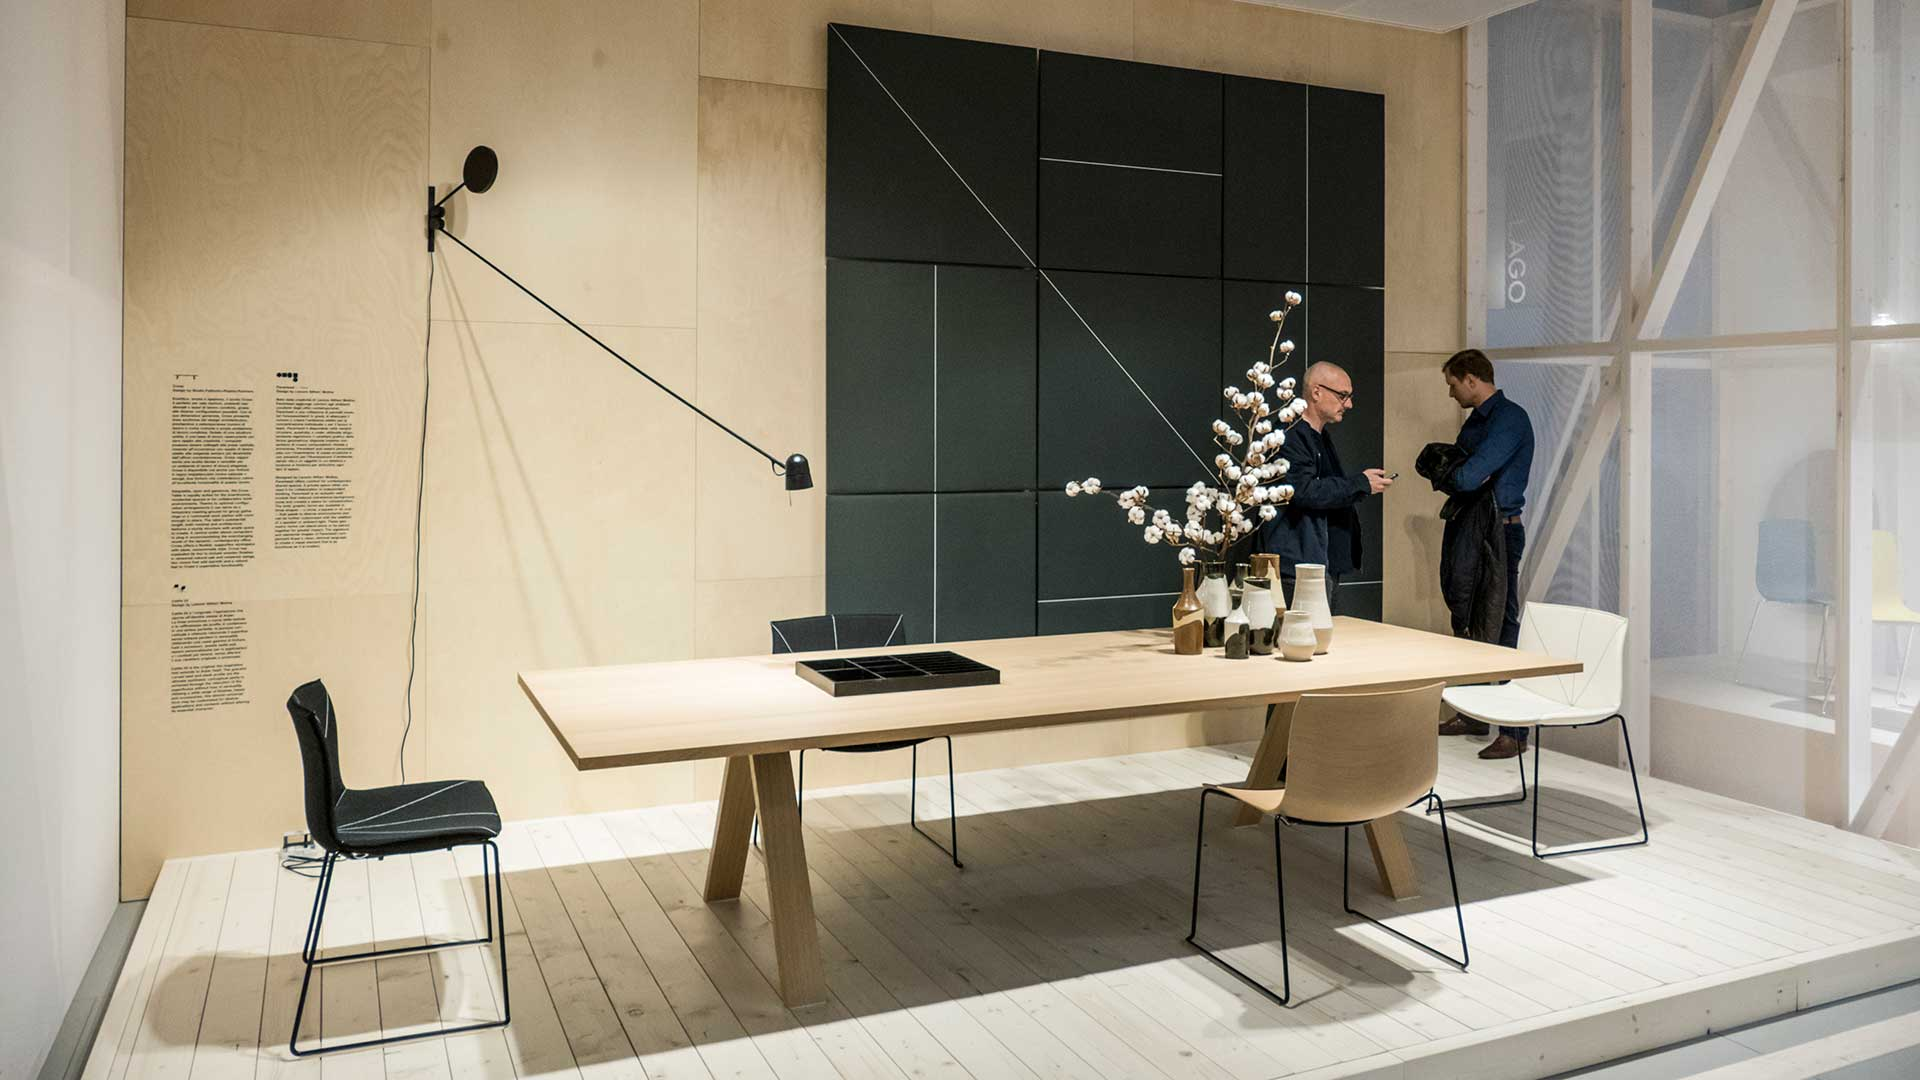 Salone del mobile 2016 la primavera milanese all 39 insegna for Fiera del mobile 2016 milano